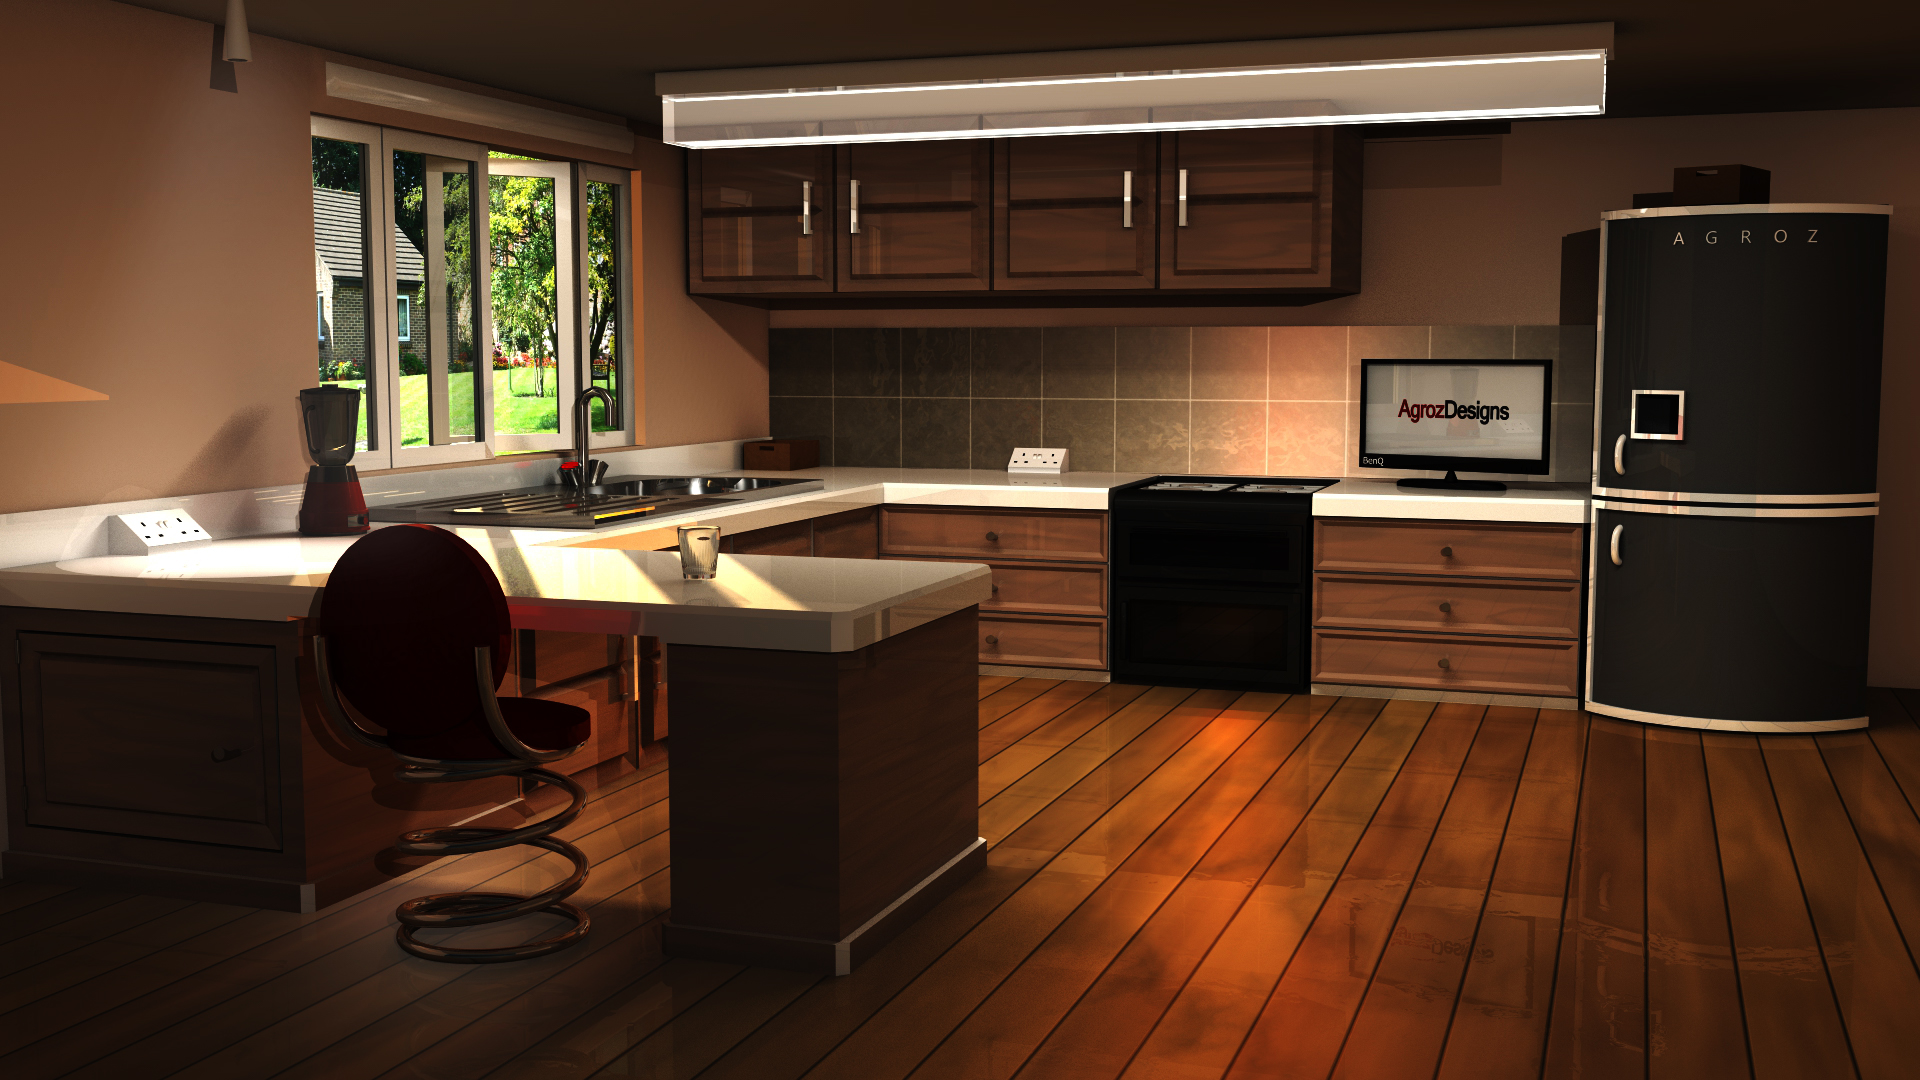 Updated Kitchen Vray By Agrozdesigns On Deviantart